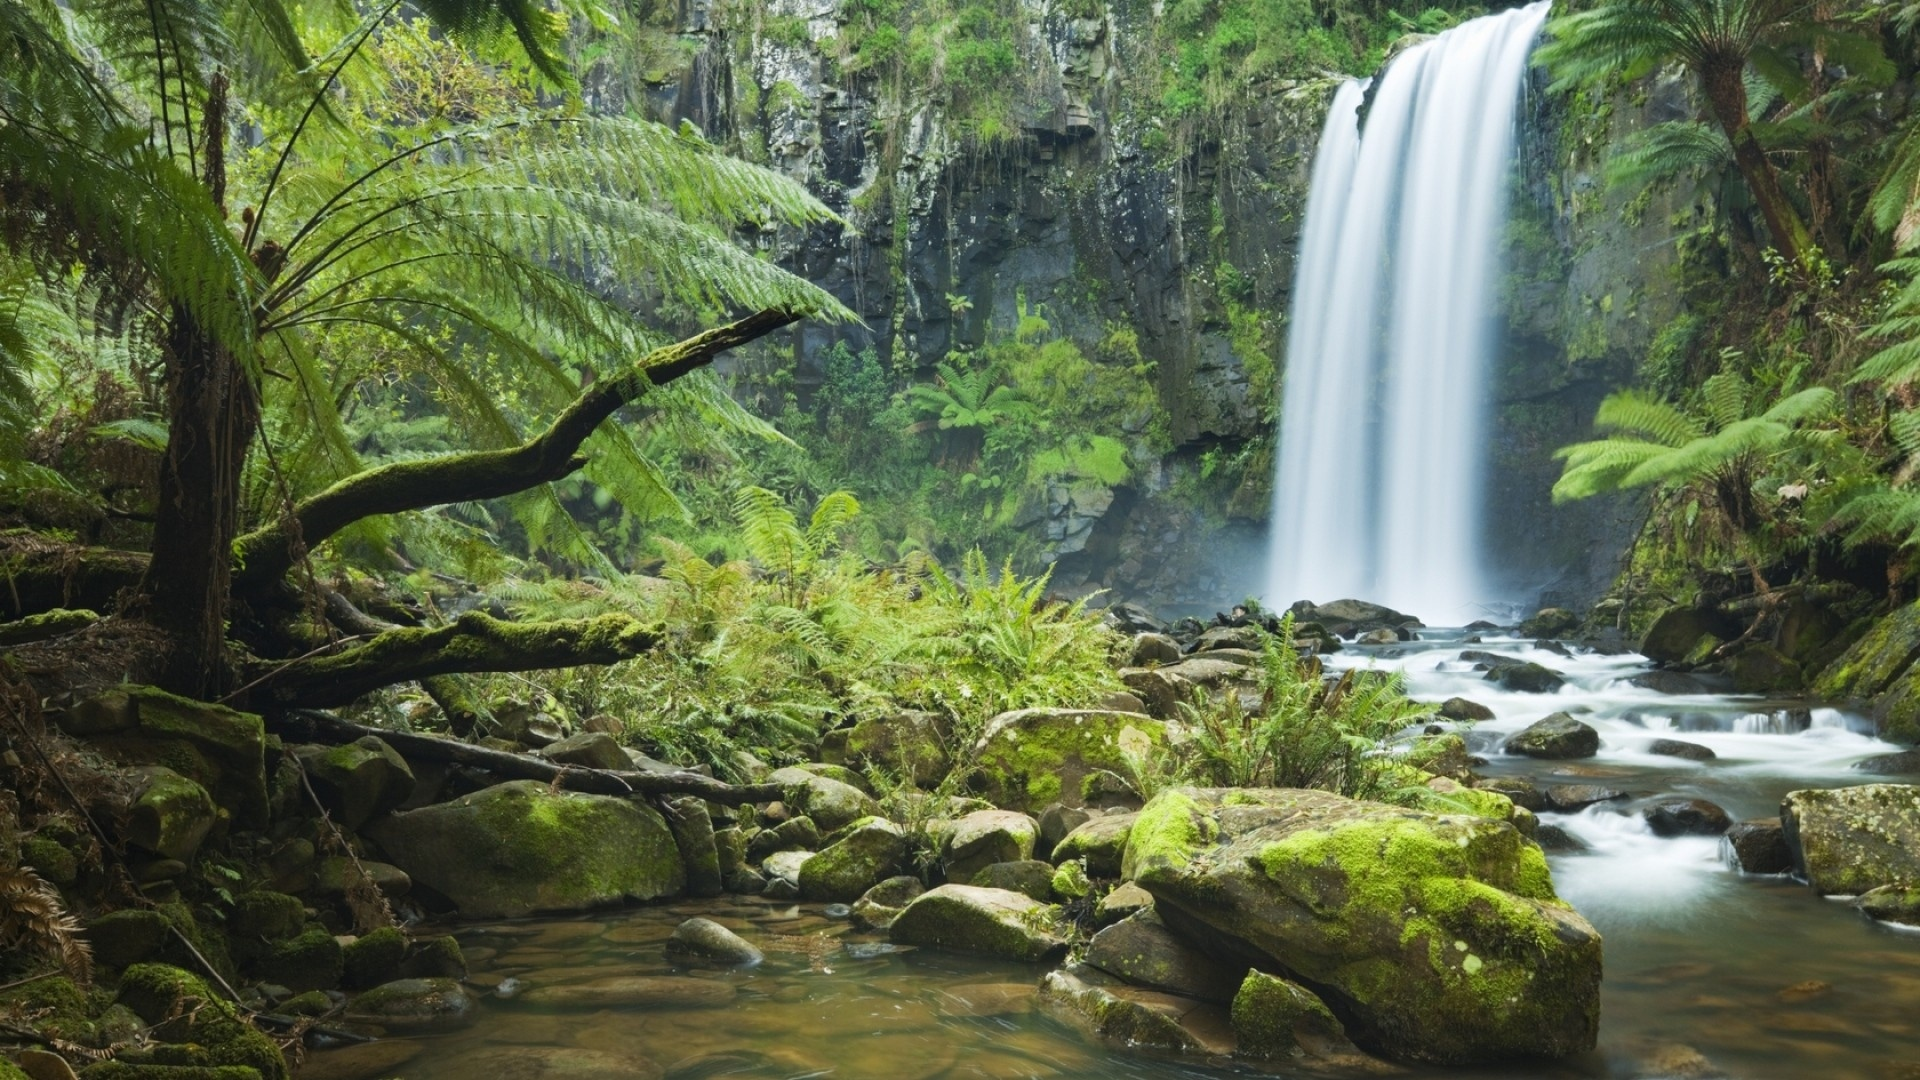 Forest Waterfall Image